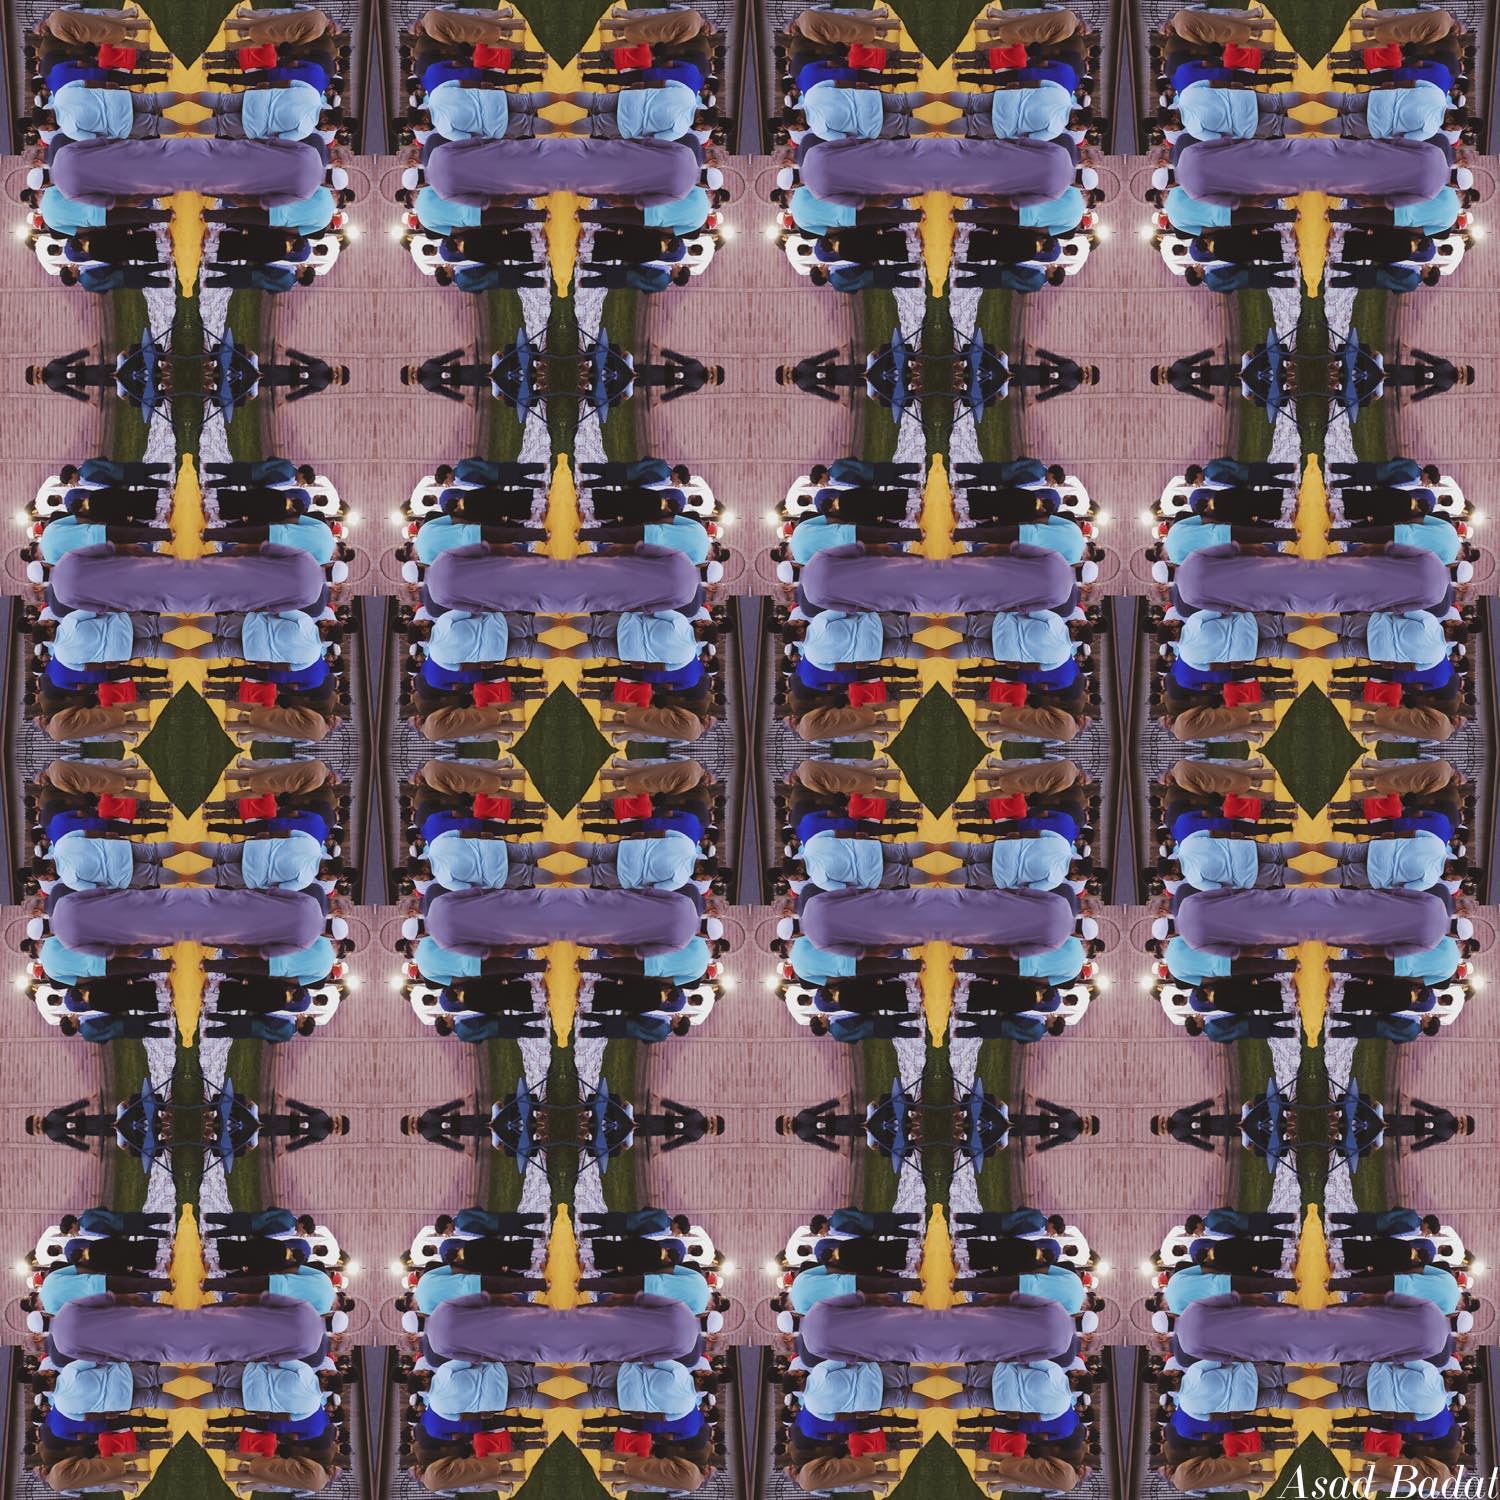 Asad-Badat-Sunset-Prayer-Collage-Pattern-Design.jpg